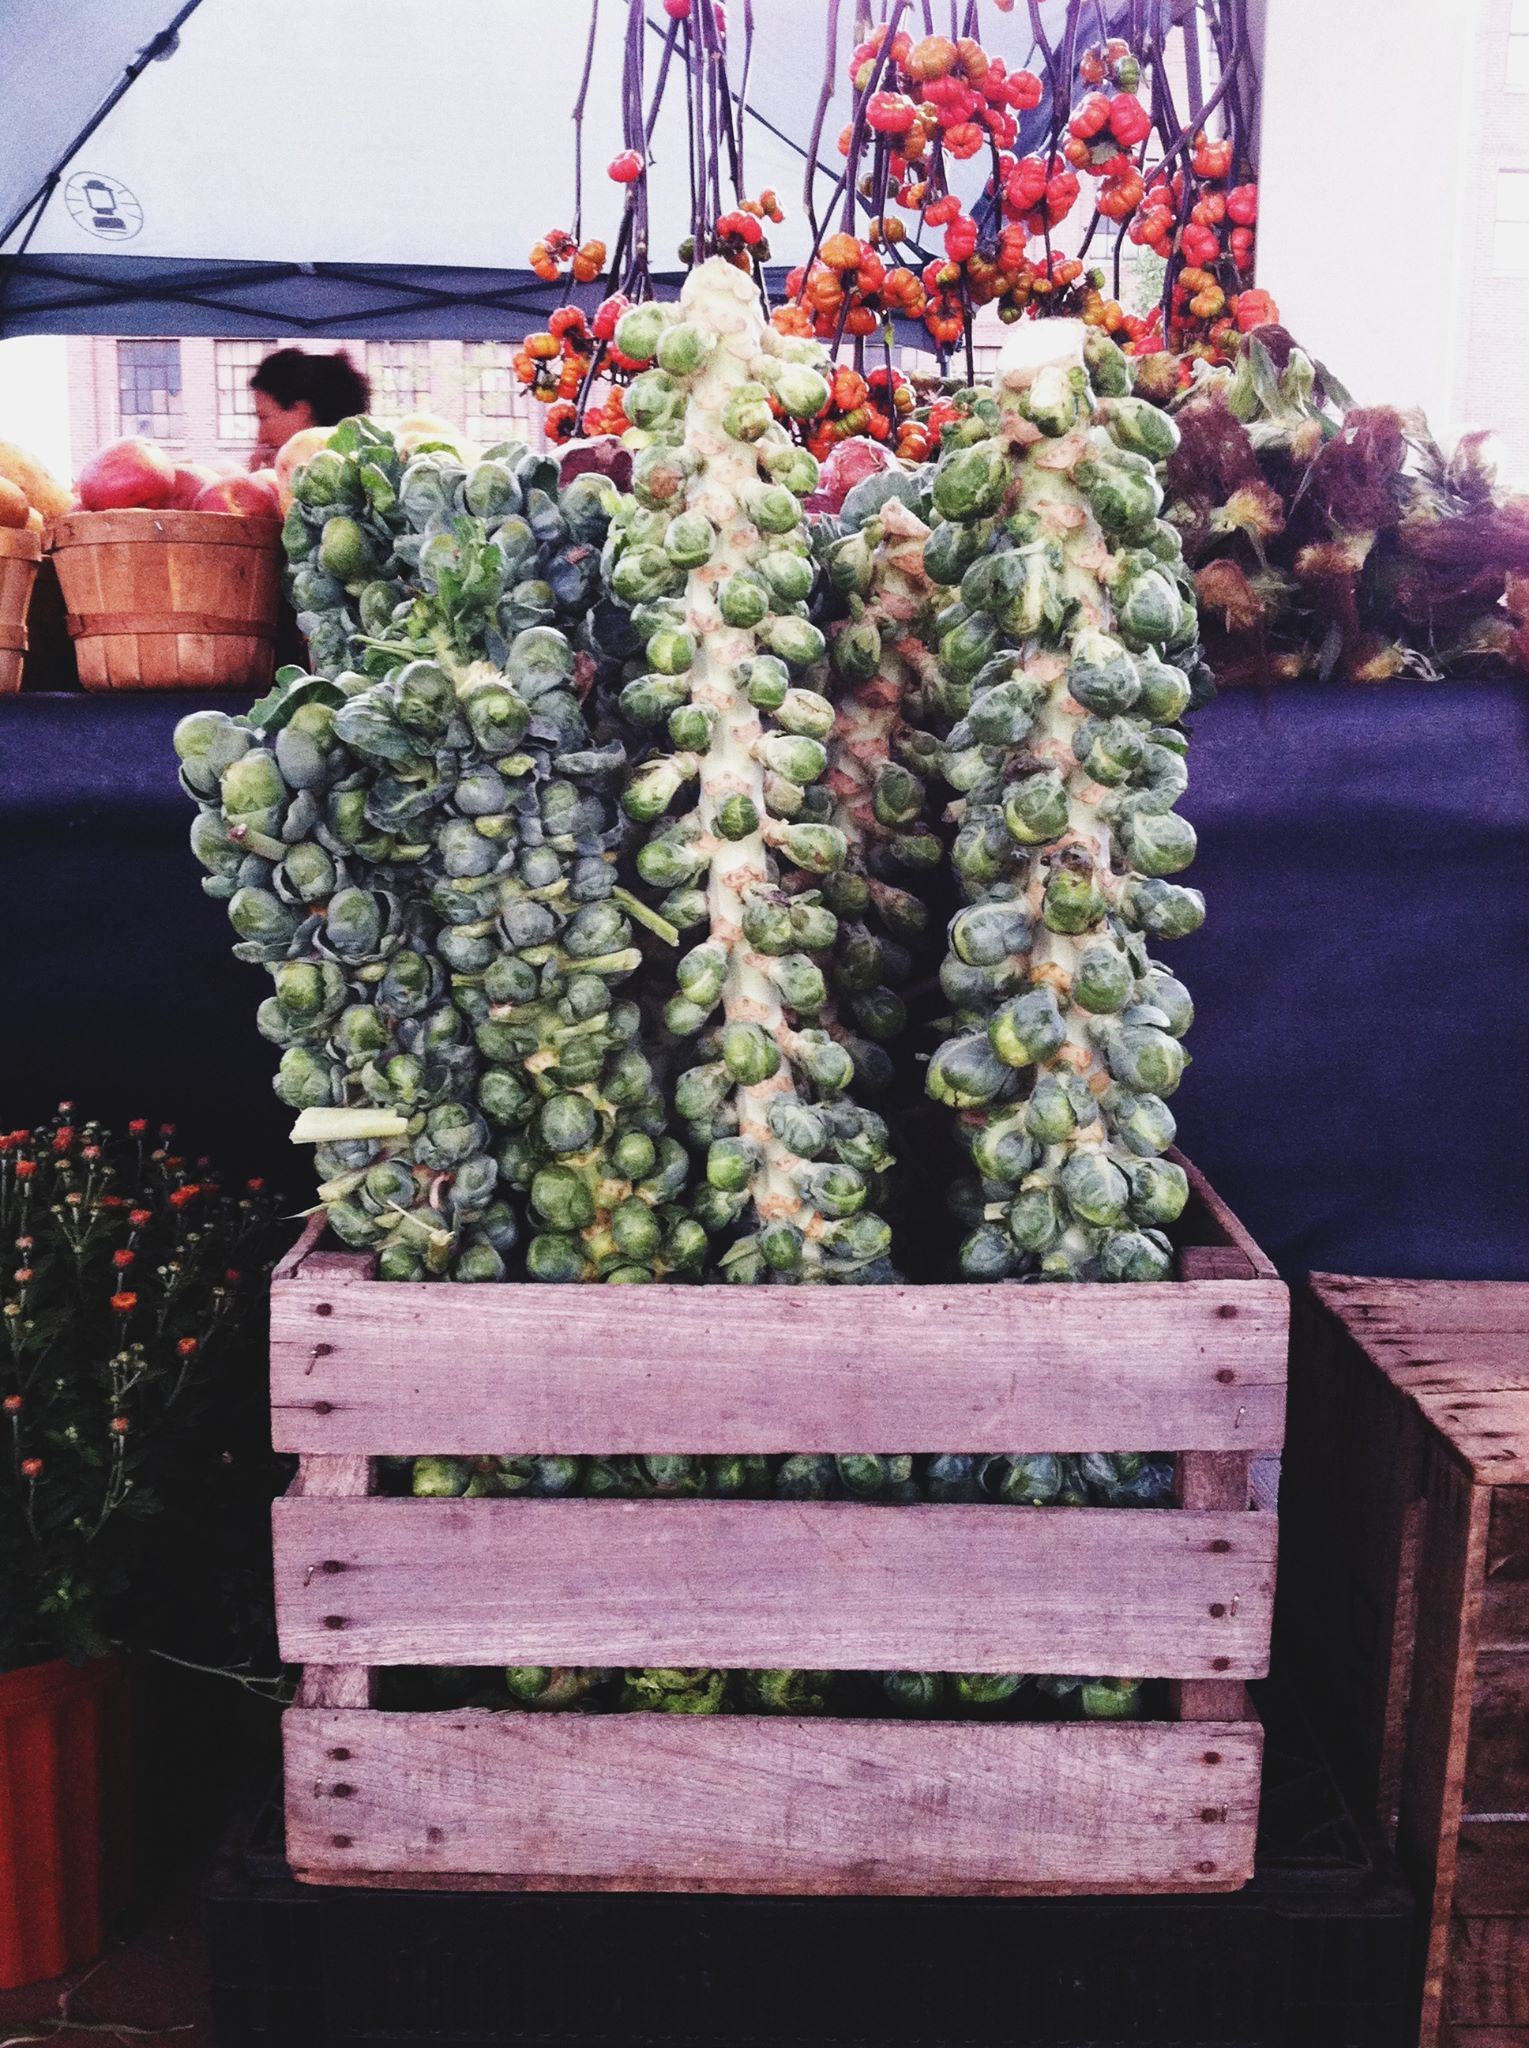 Brussels Sprouts Ready for Roasting, photo courtesy Downtown Market